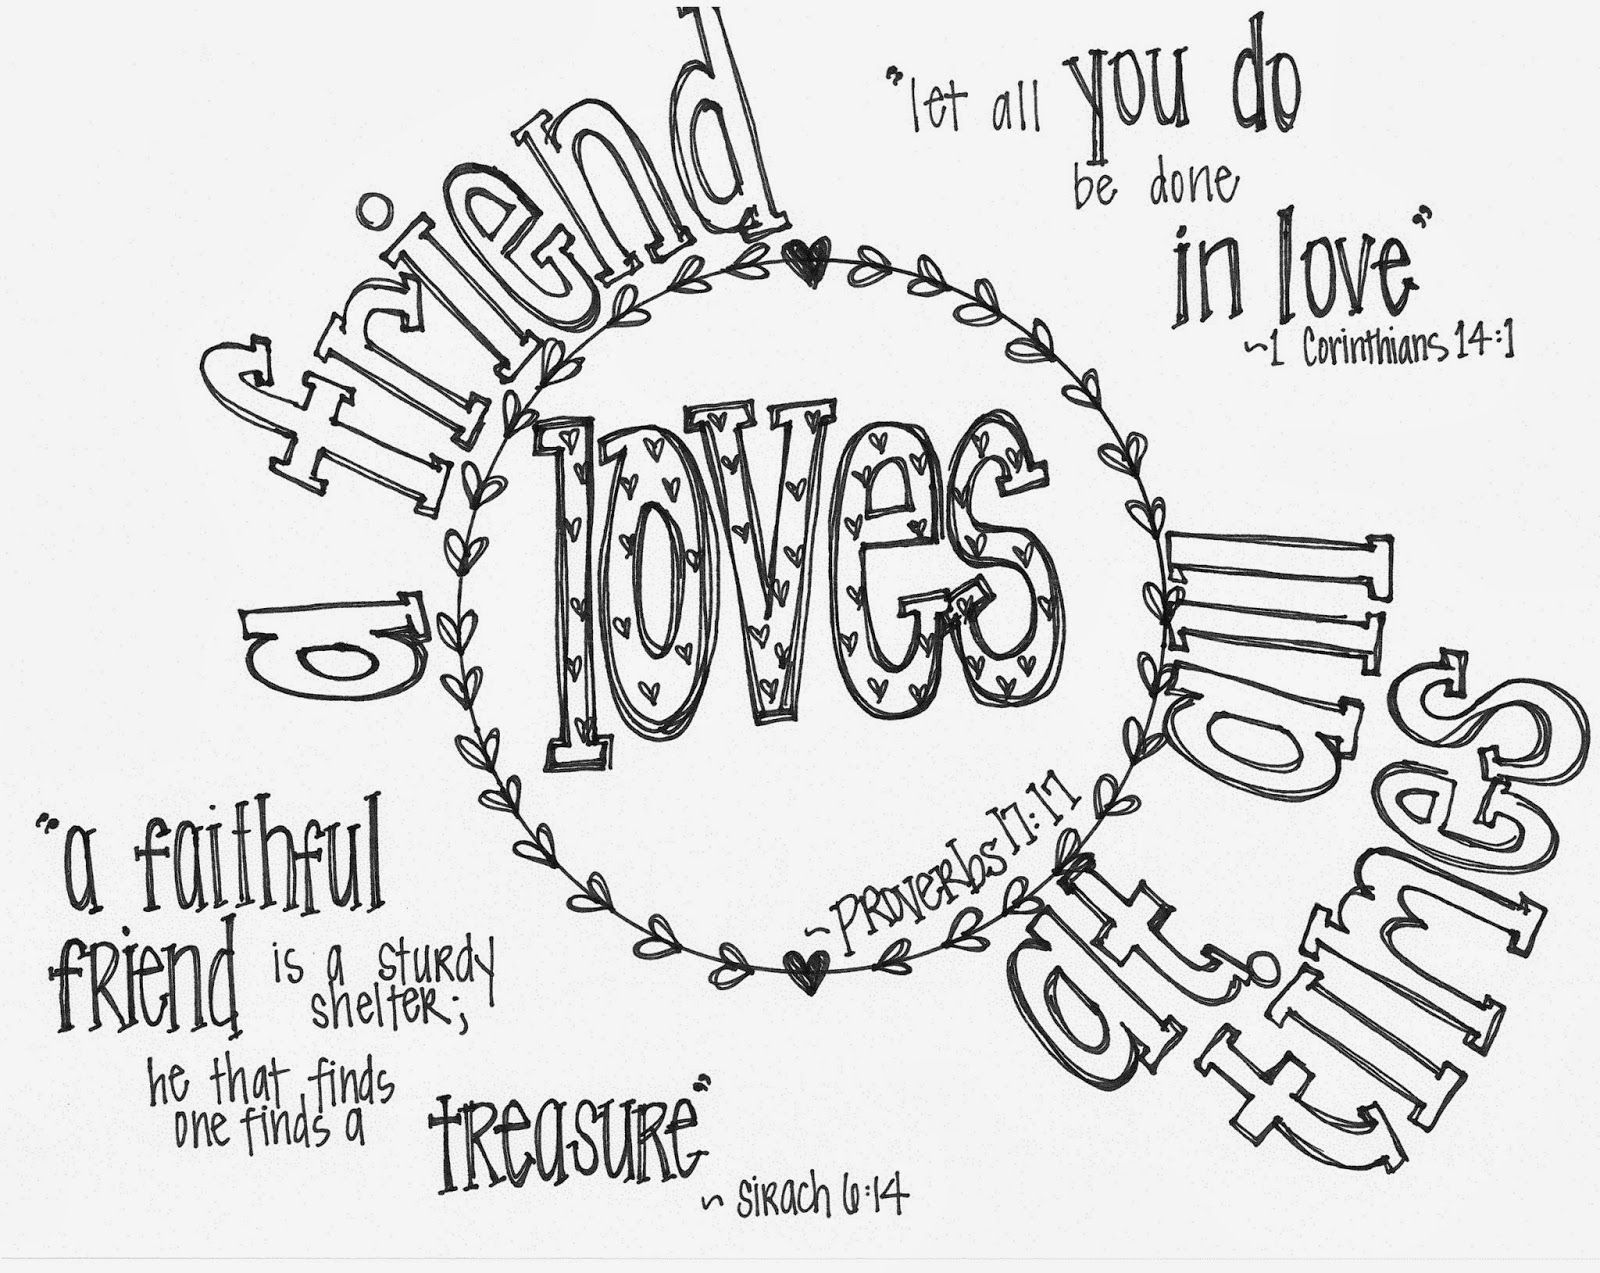 Free printable coloring pages for kids bible - Free Printable Valentine S Coloring Page With Bible Verses A Friend Loves At All Times